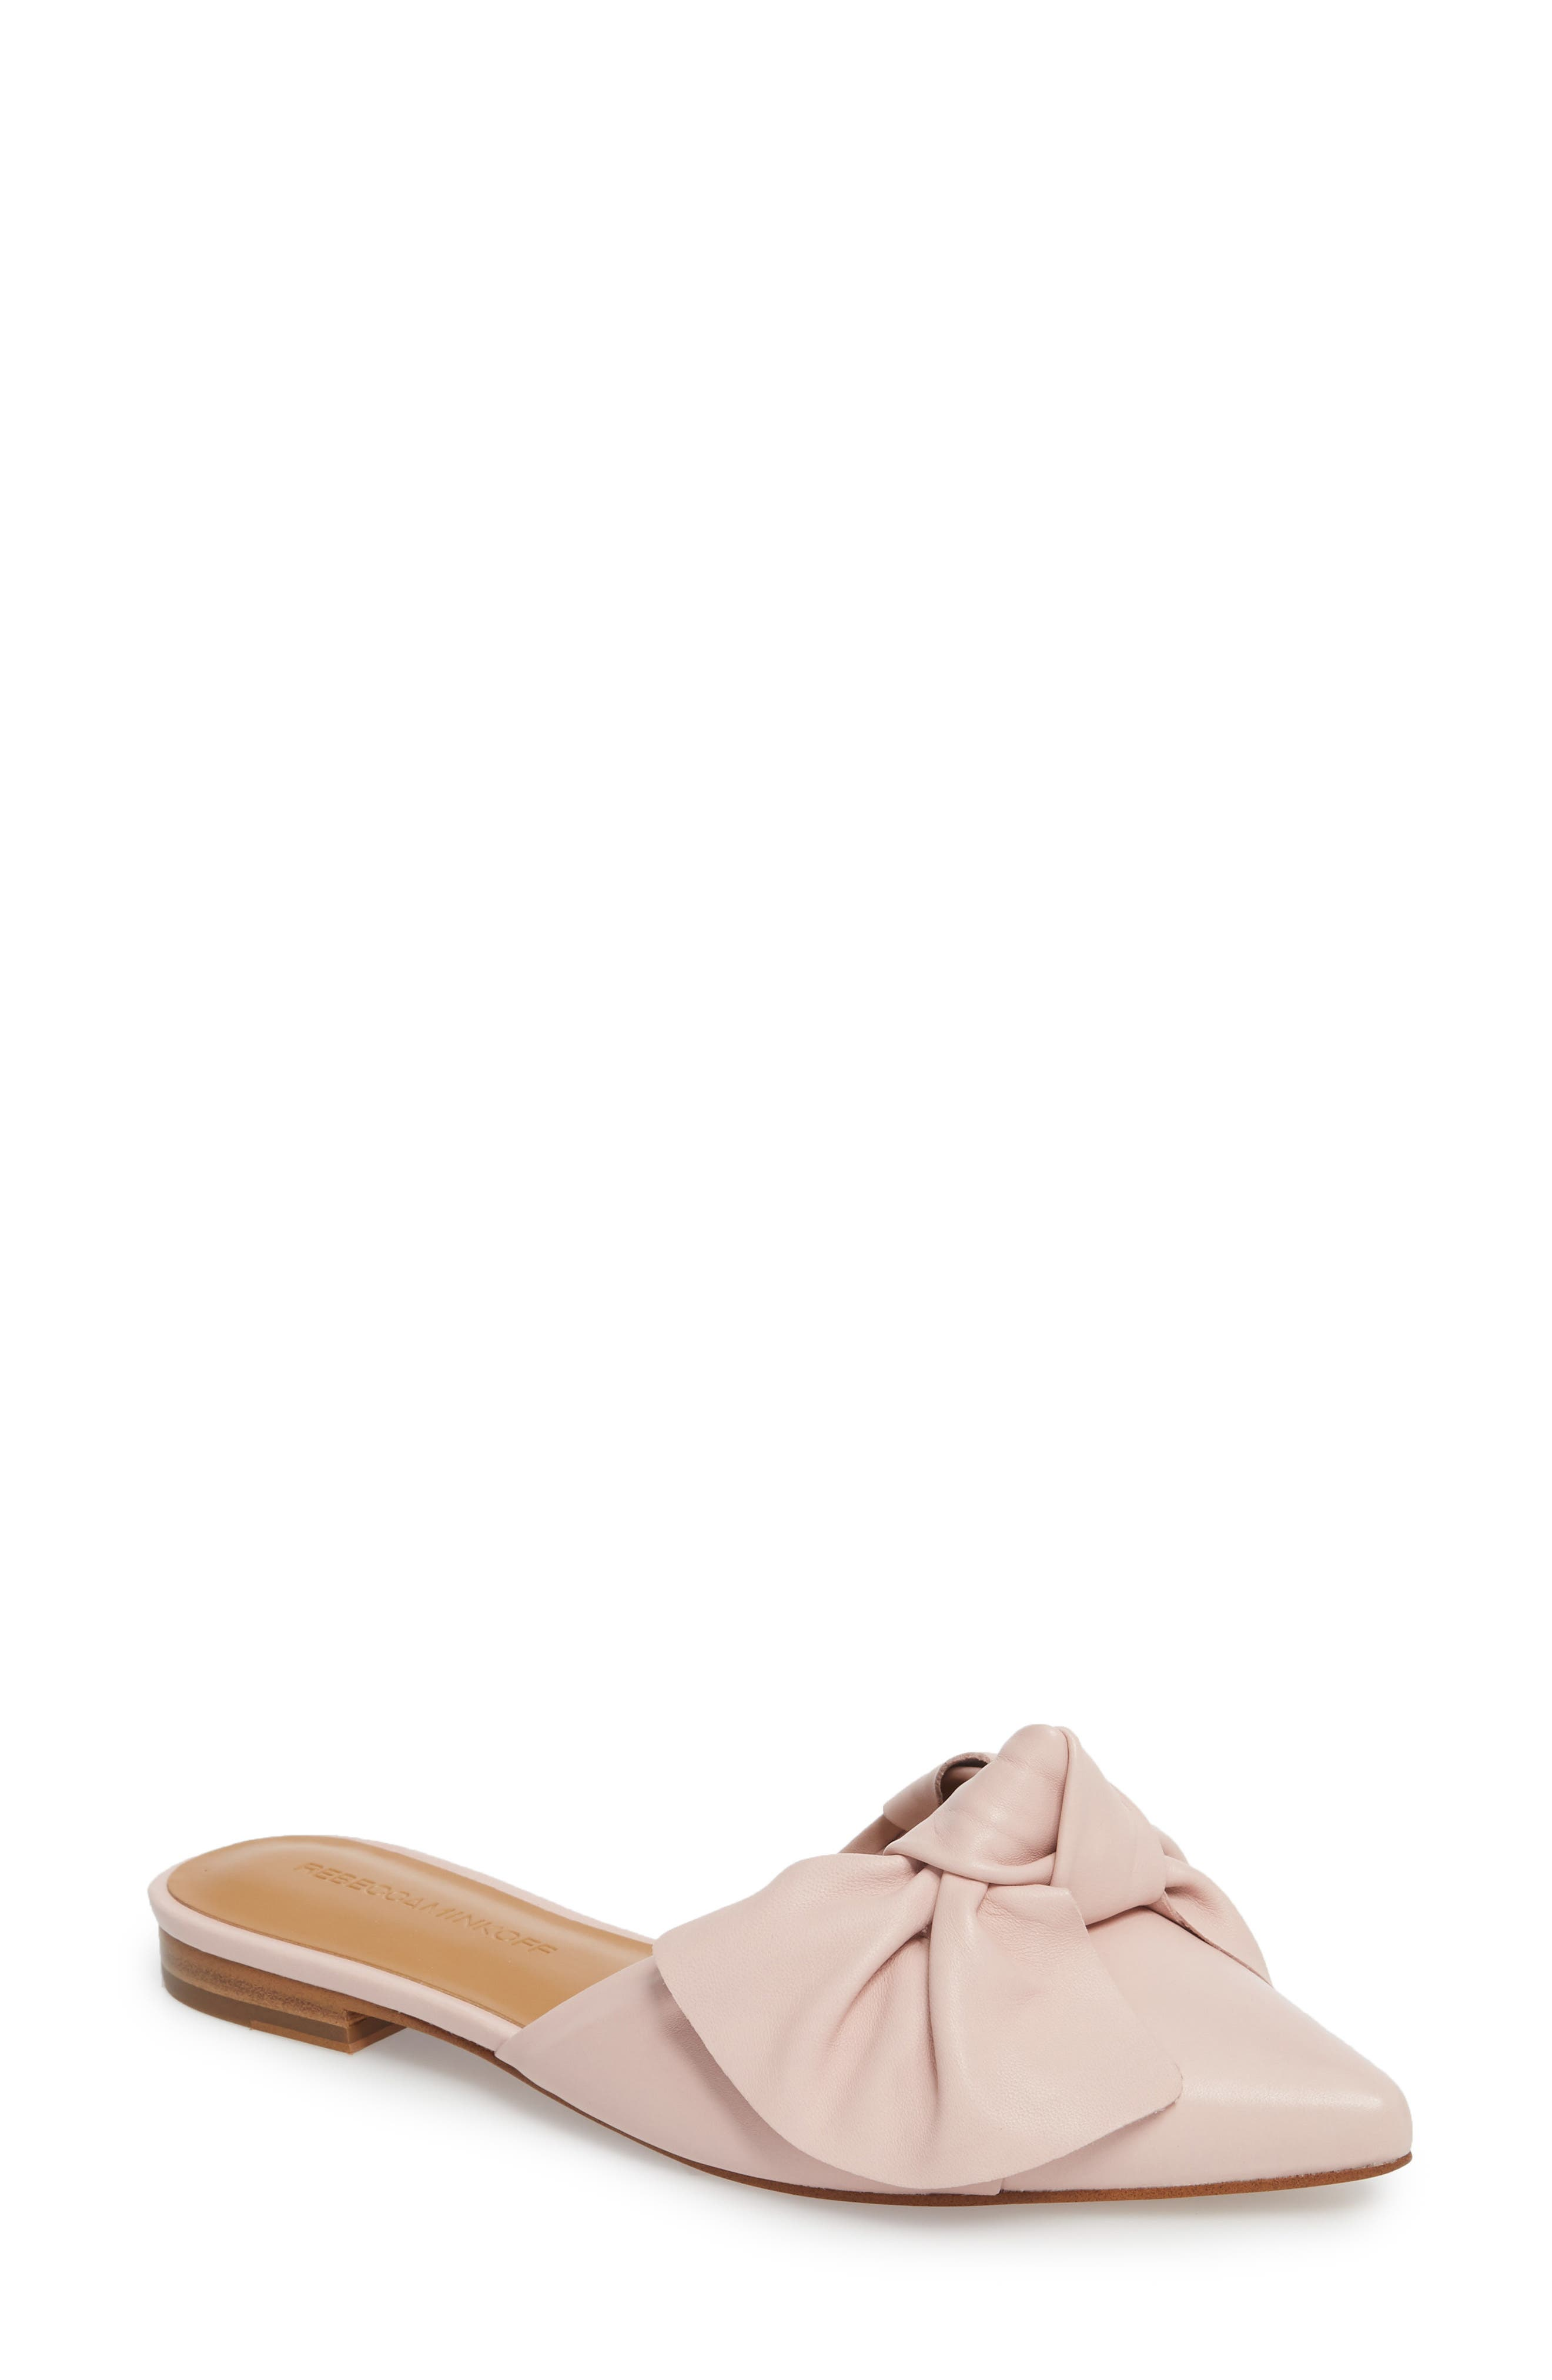 Alexis Bow Mule,                         Main,                         color, MILLENNIAL PINK LEATHER